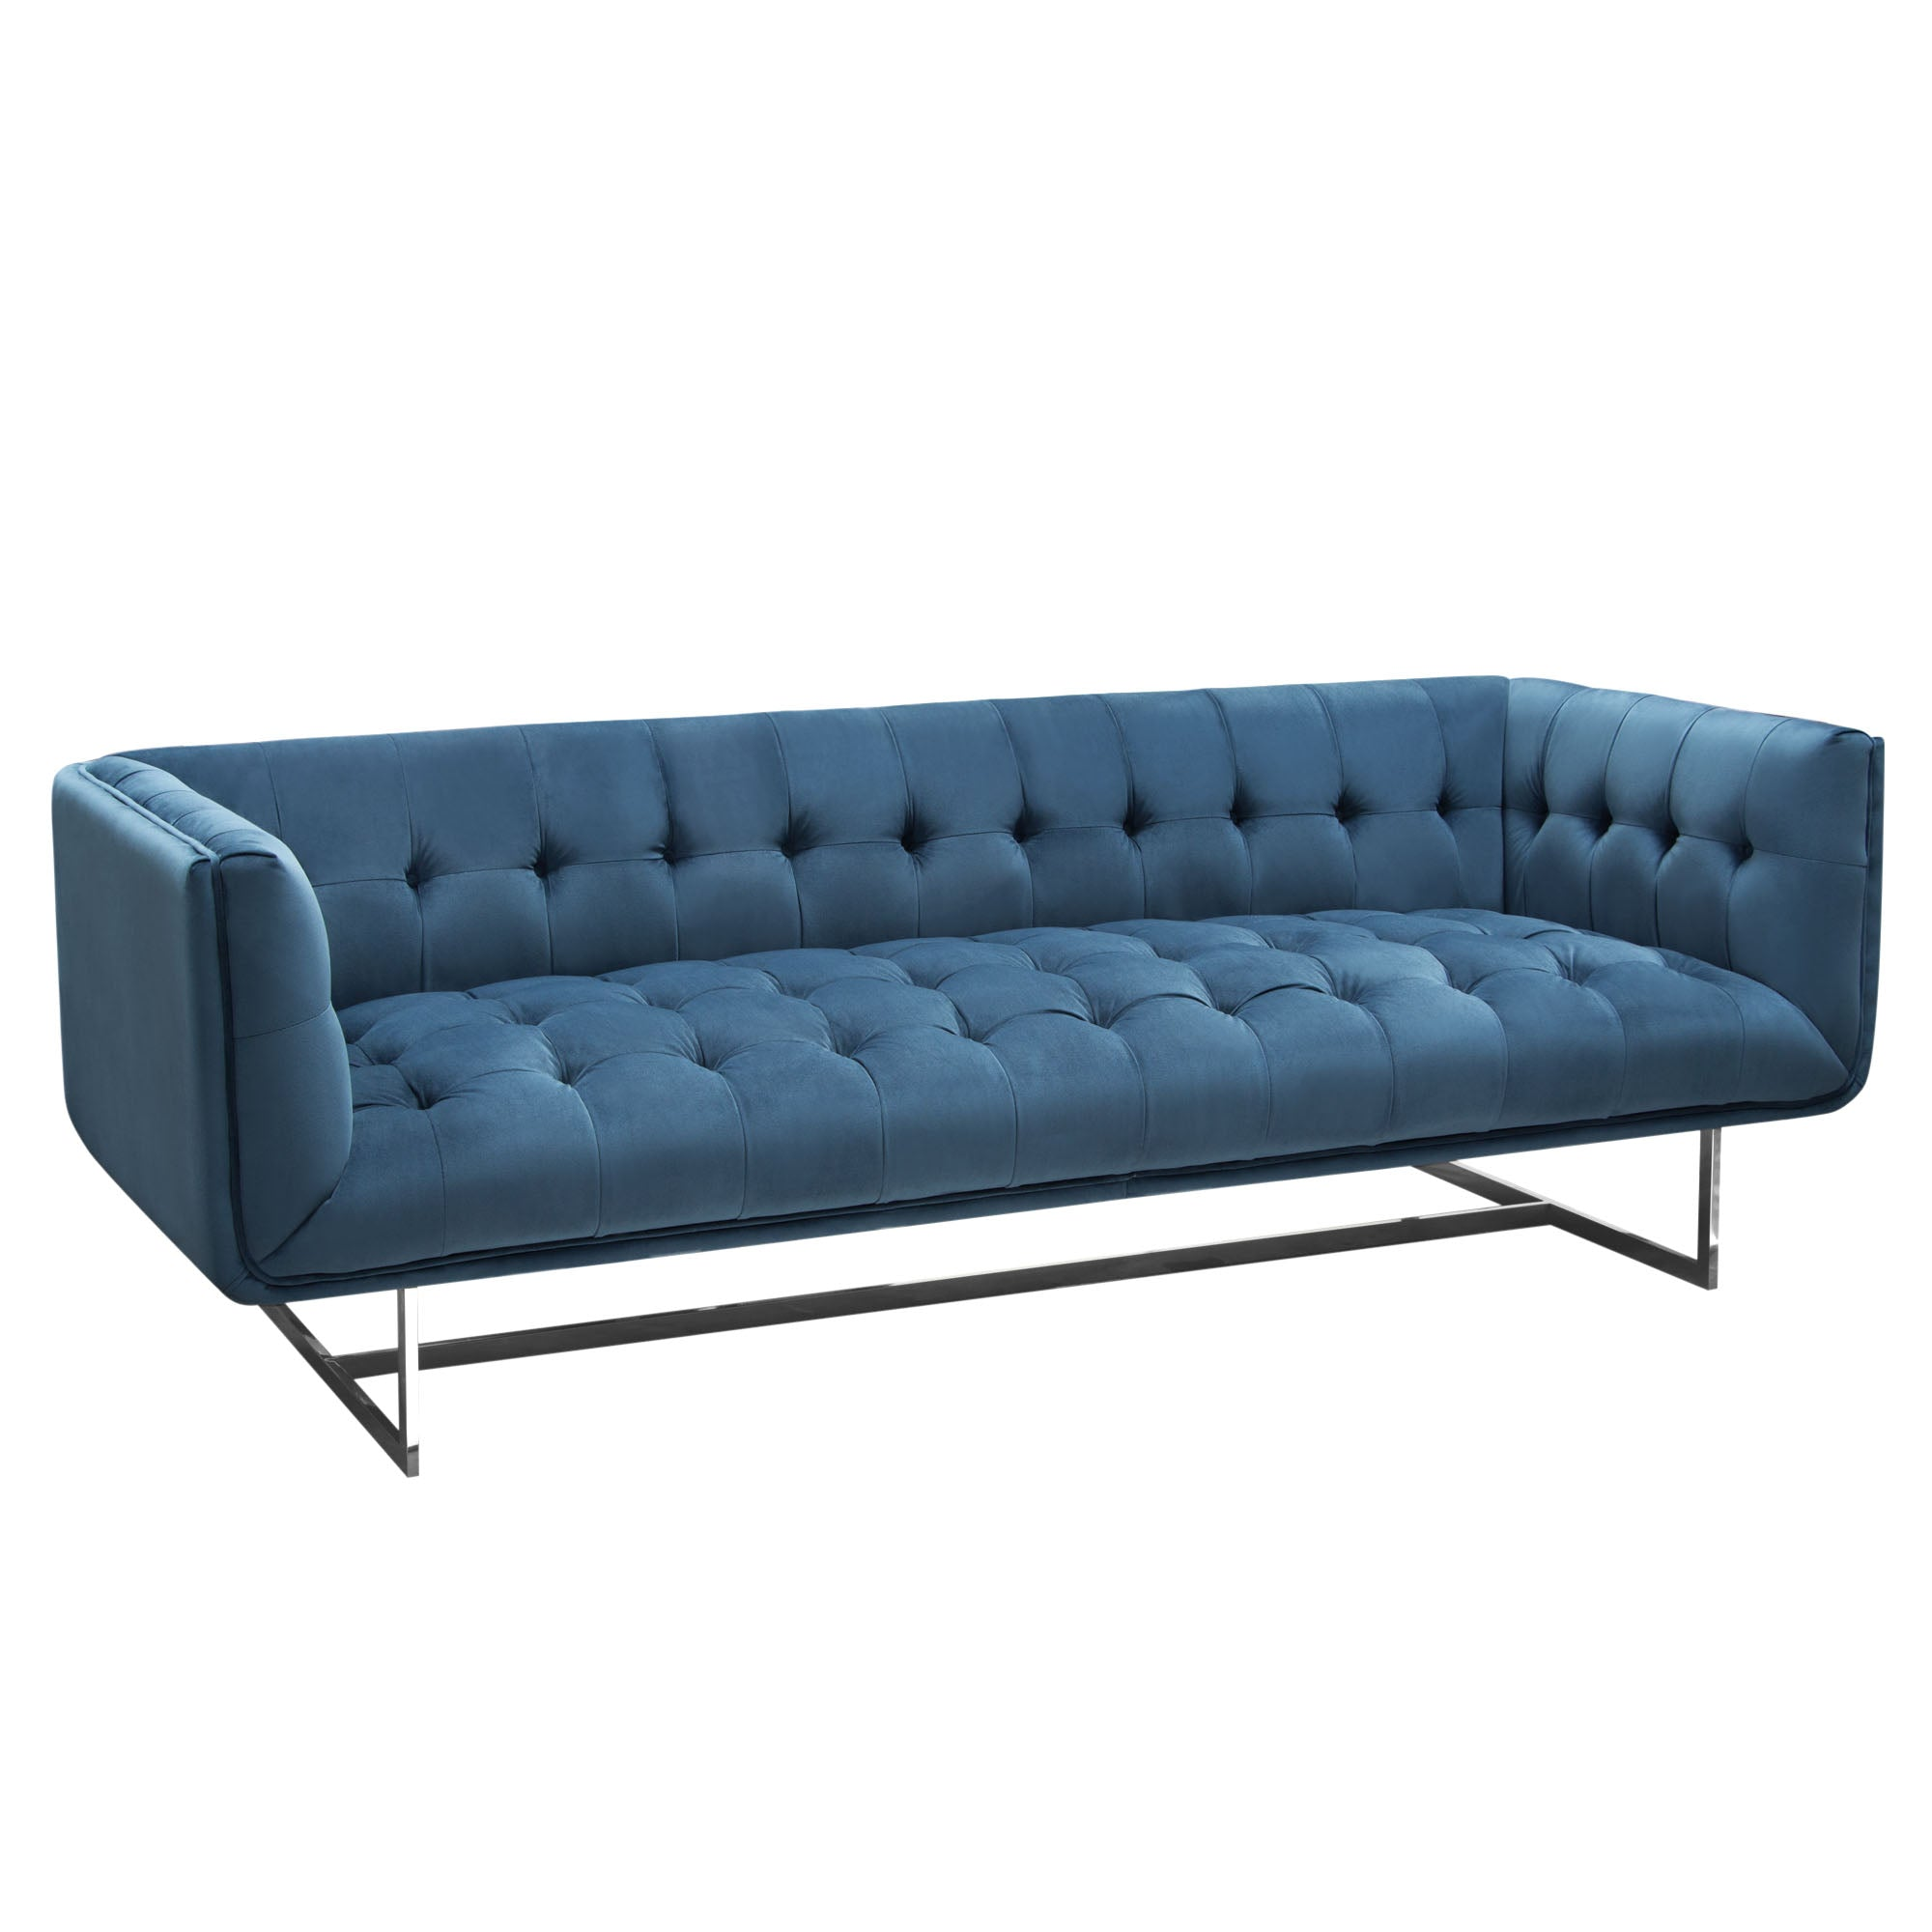 Picture of: Buy Diamond Sofa Hollywoodsobu Hollywood Tufted Sofa In Royal Blue Velvet With Metal Leg At Contemporary Furniture Warehouse